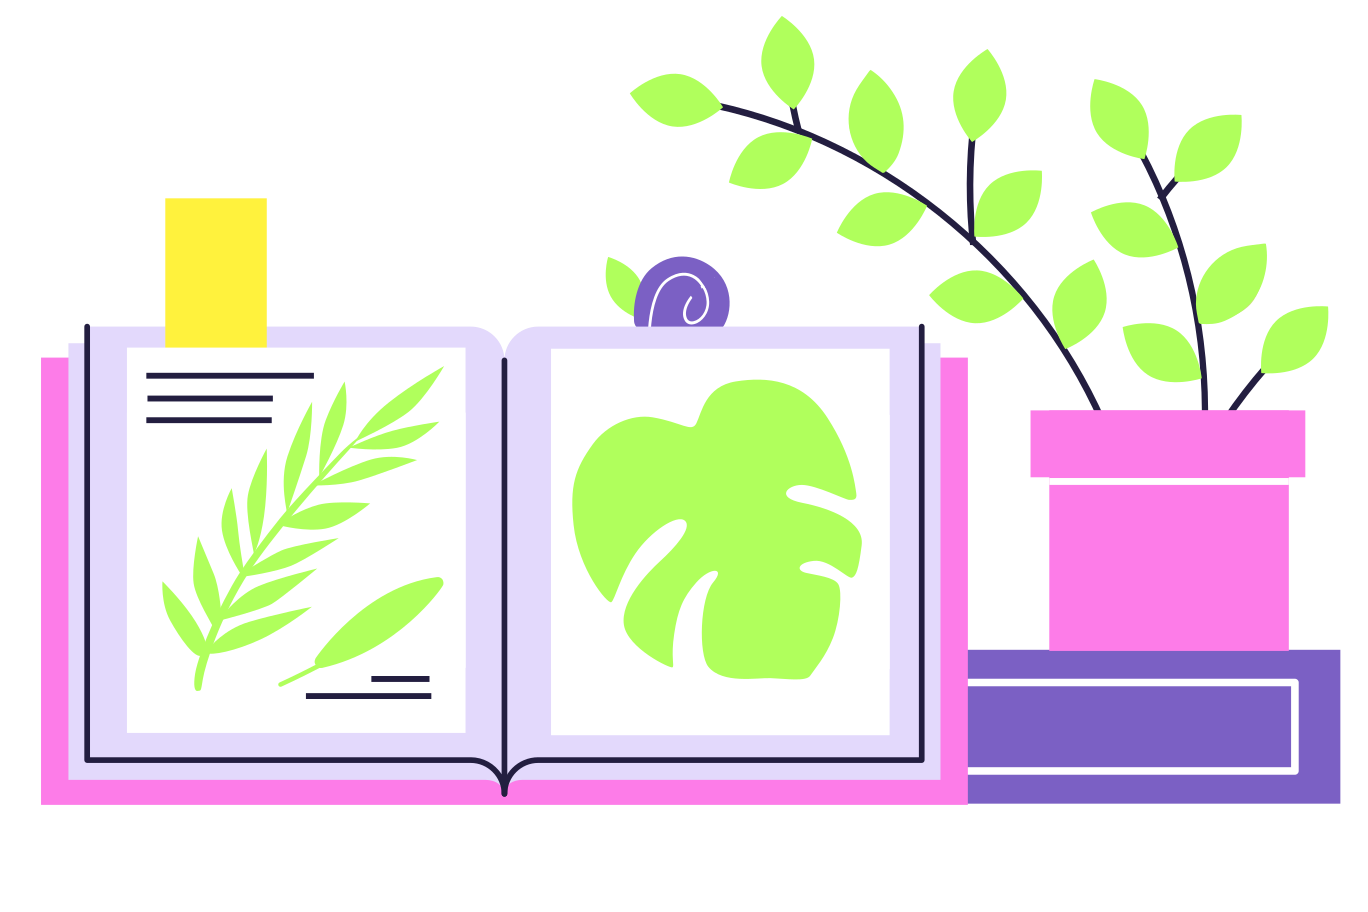 style Books Vector images in PNG and SVG   Icons8 Illustrations